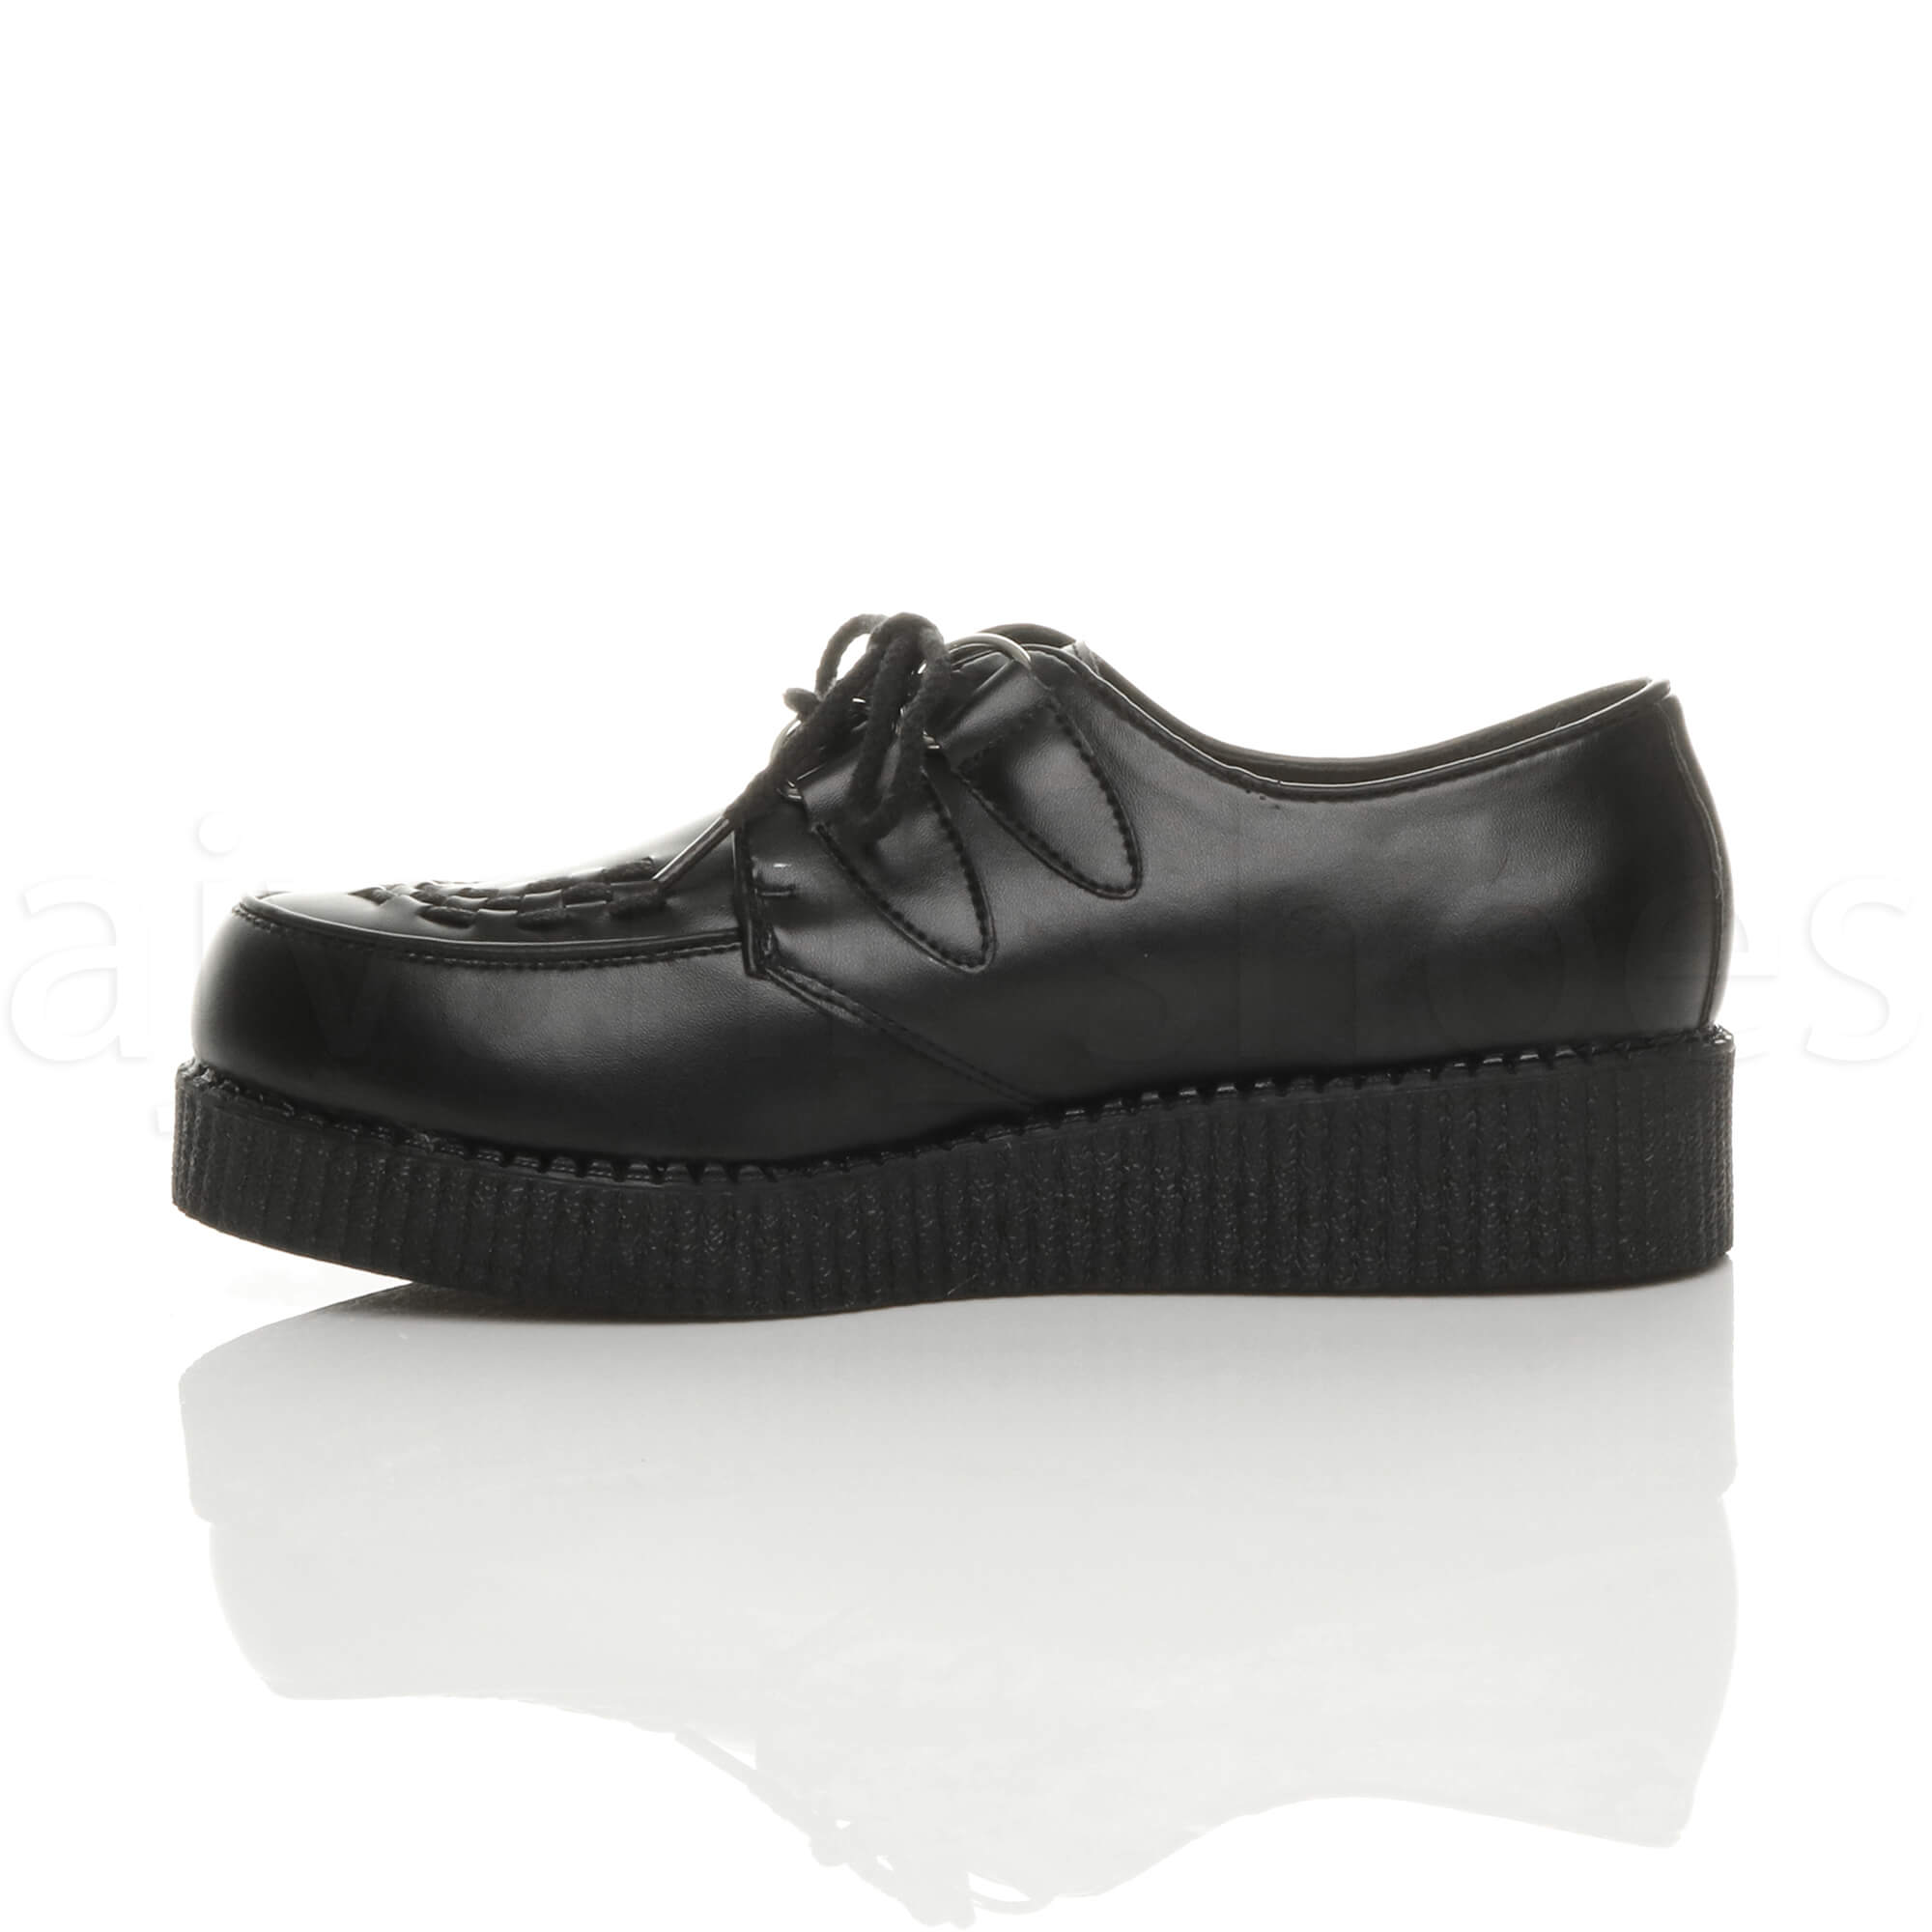 MENS-PLATFORM-WEDGE-LACE-UP-GOTH-PUNK-BROTHEL-CREEPERS-BEETLE-CRUSHERS-SHOES thumbnail 4